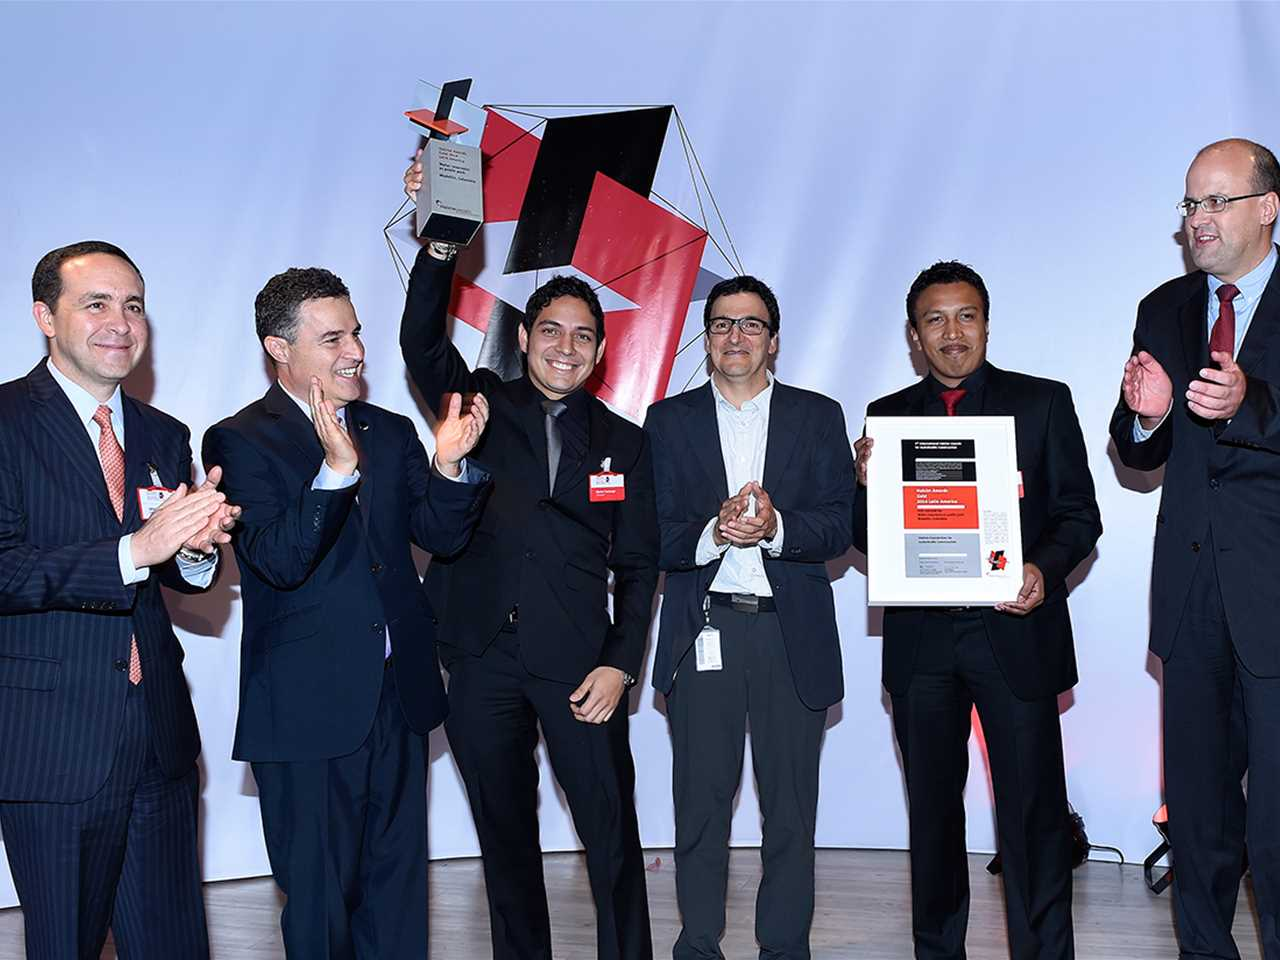 Holcim Awards 2014 for Latin America - Prize handover ceremony